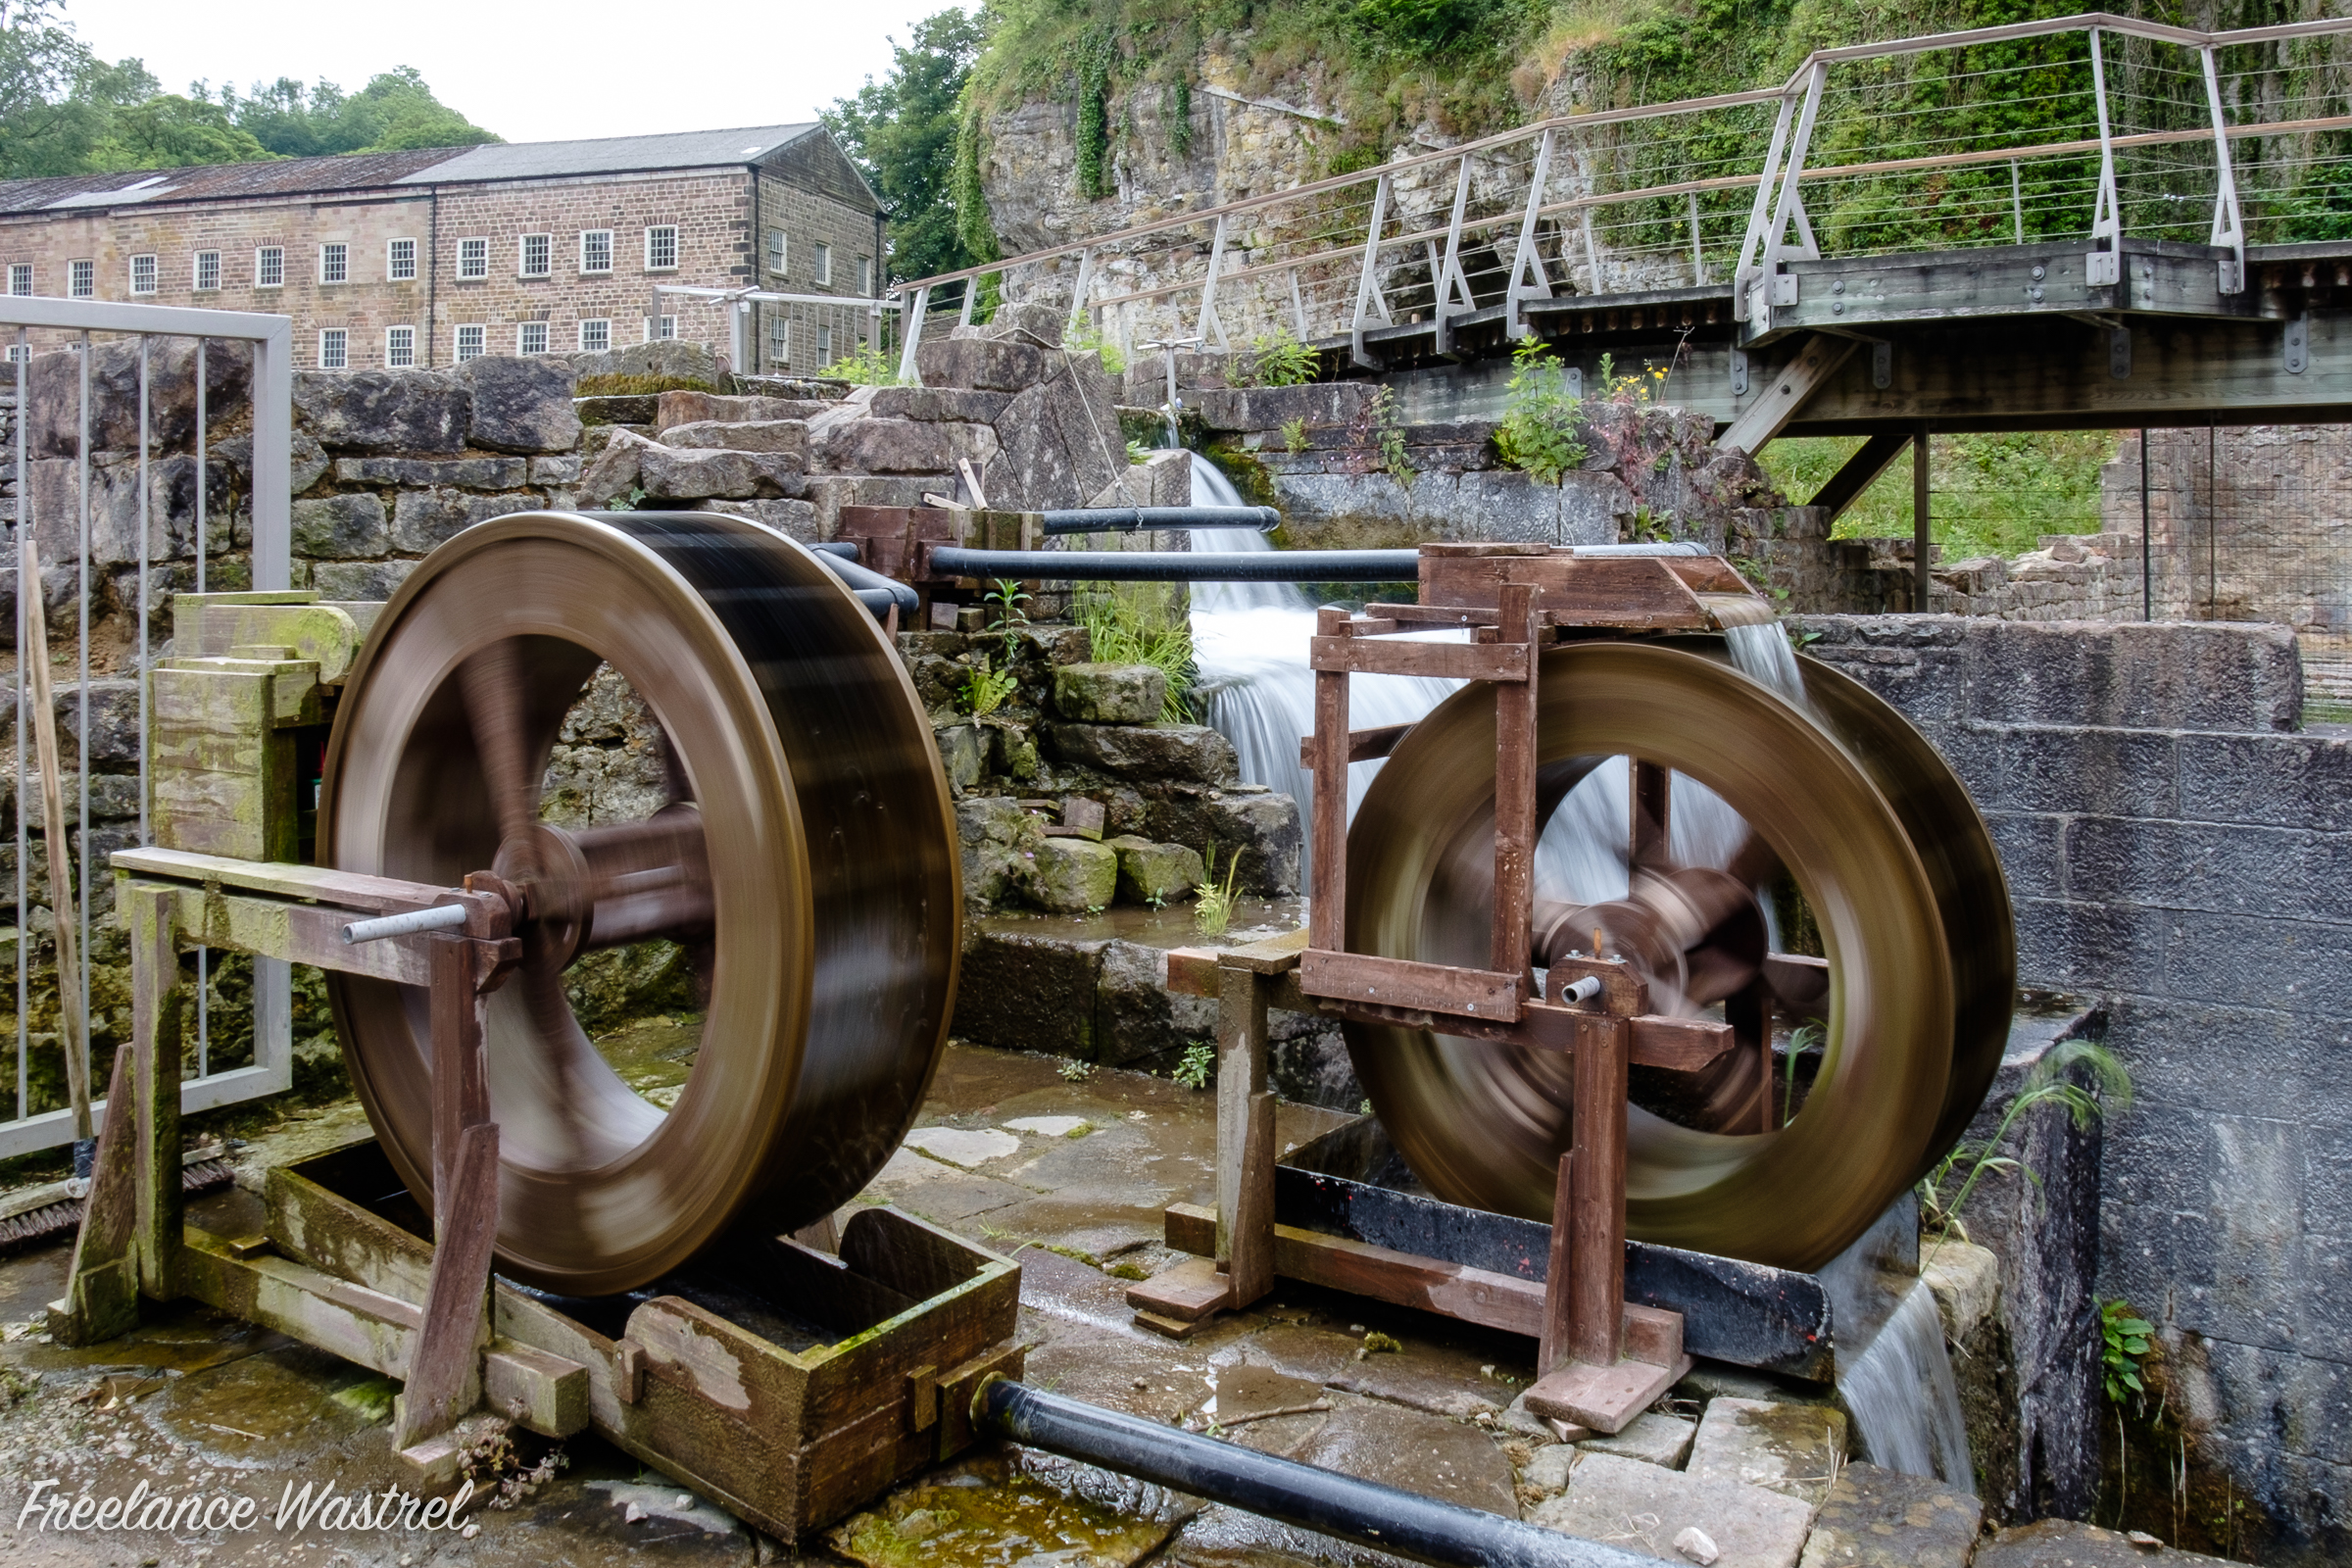 Water wheels, Cromford Mill, June 2018